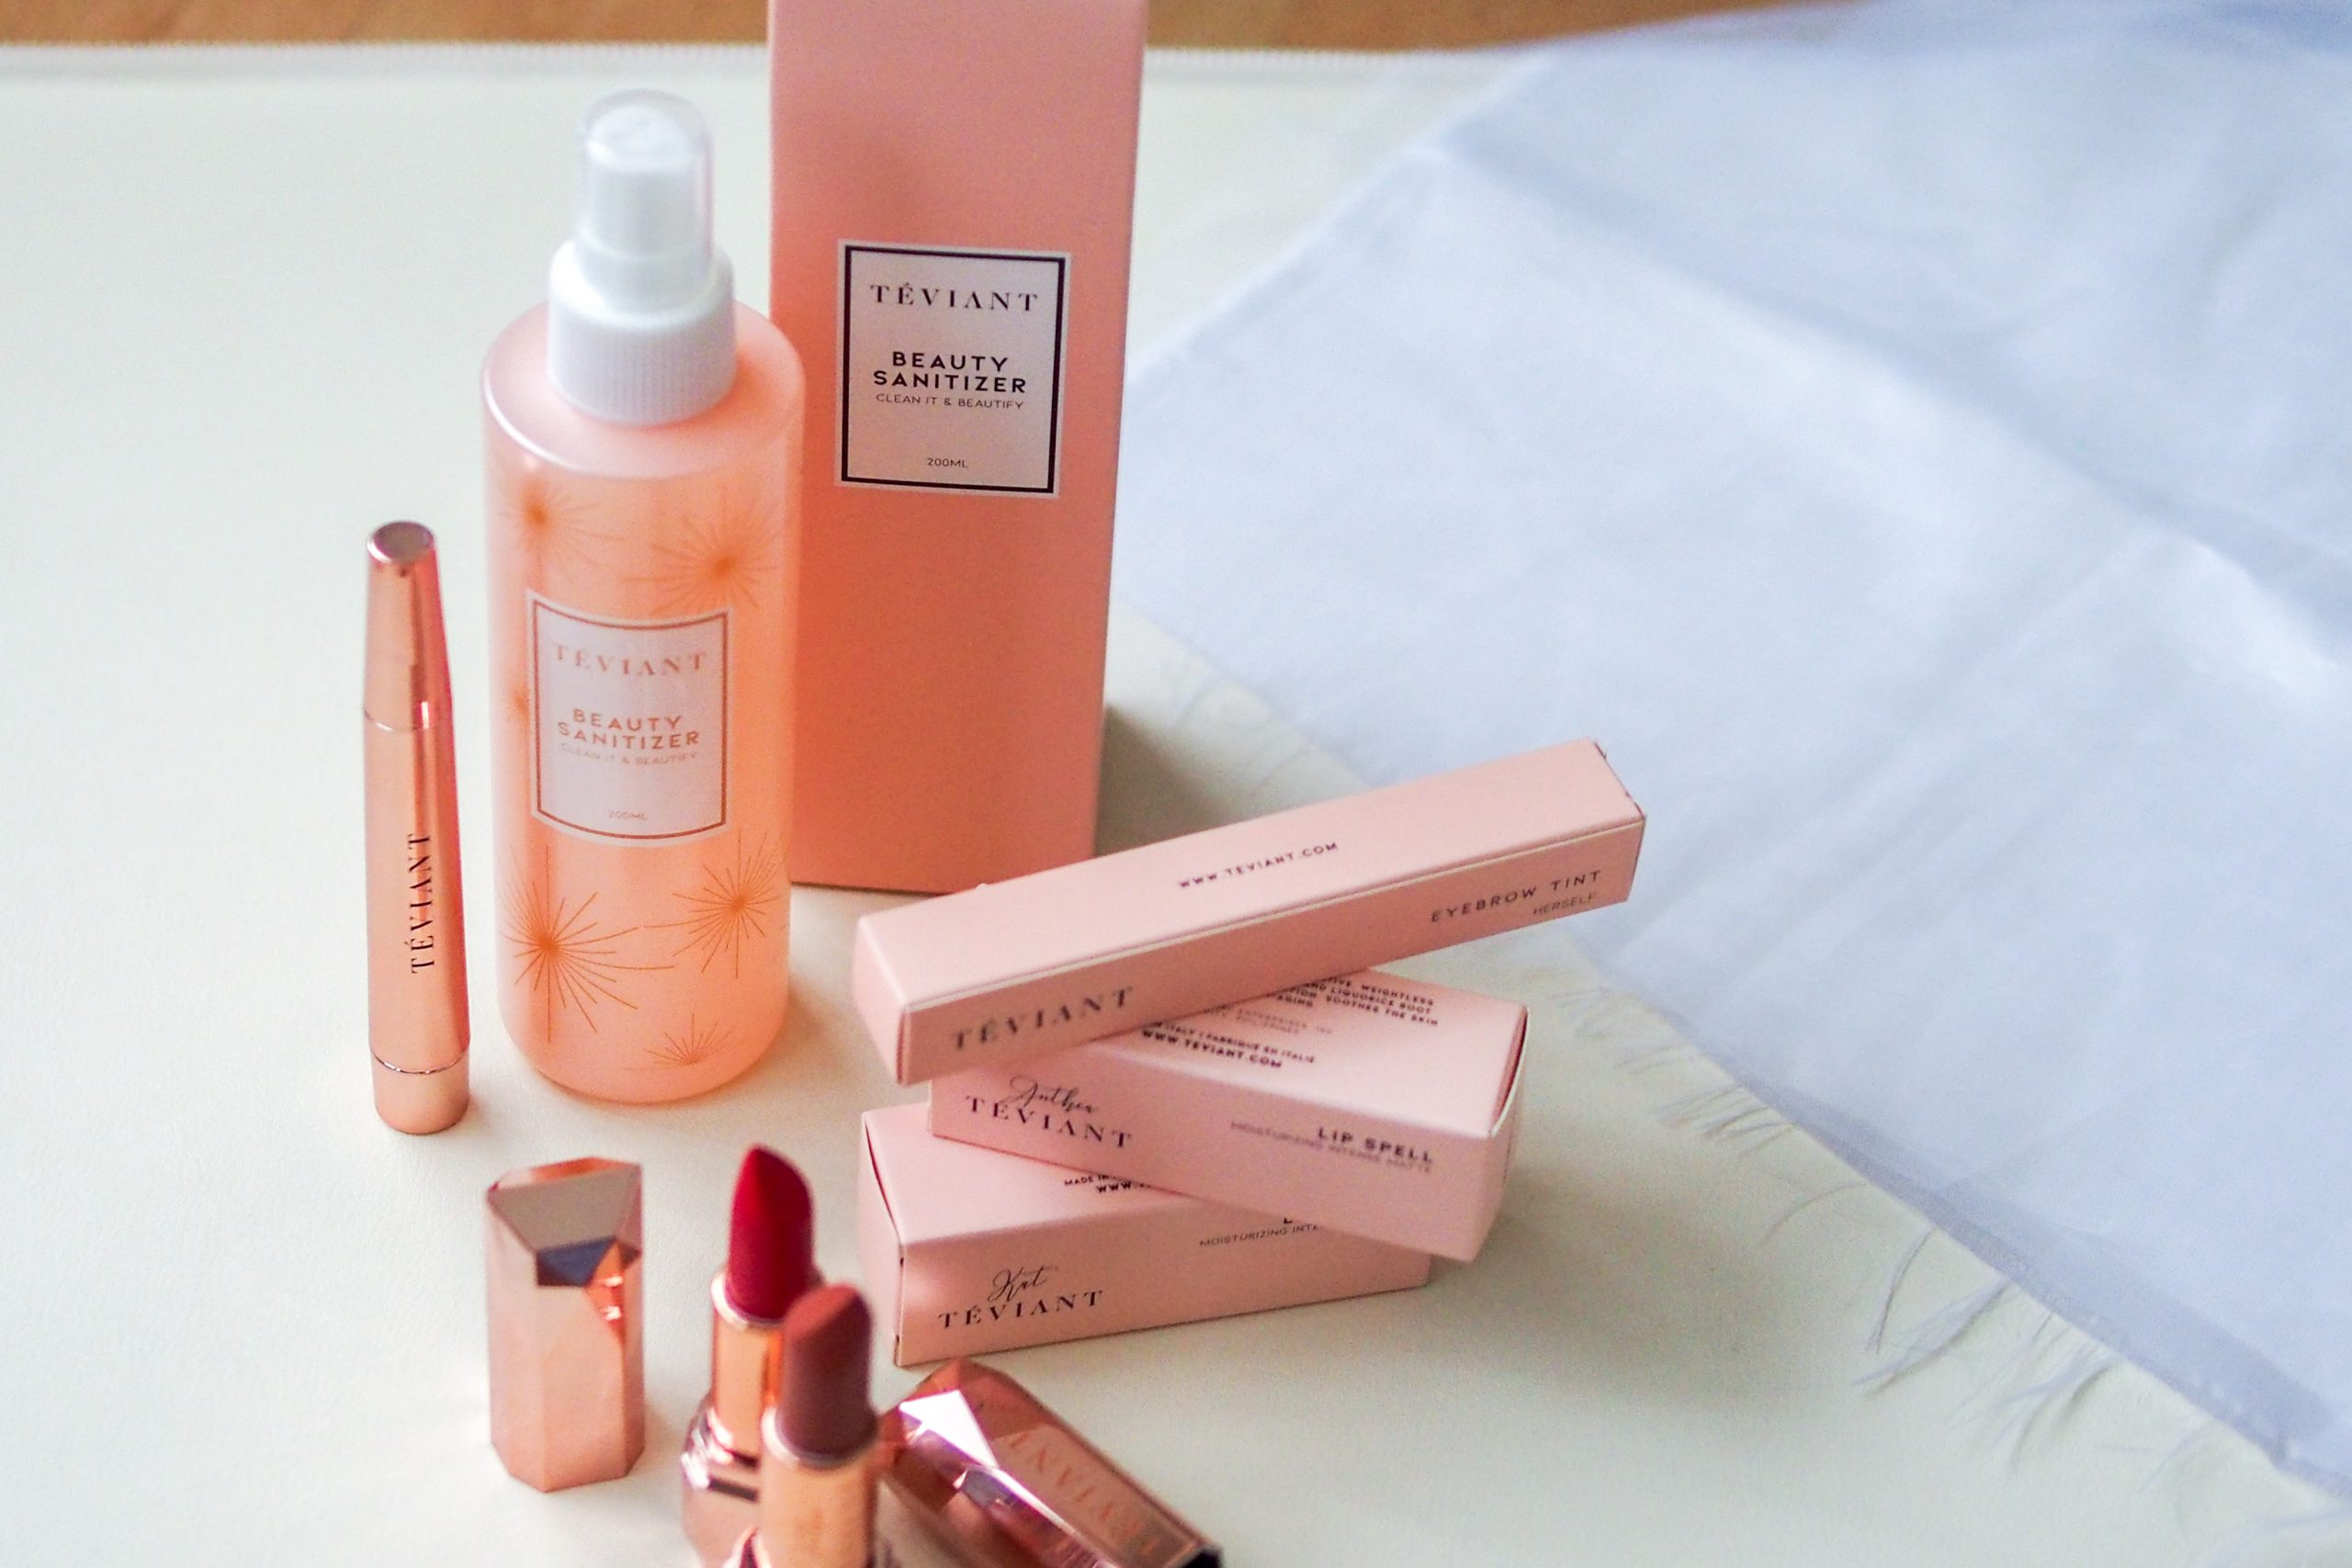 Beauty Review: Teviant on Shopee